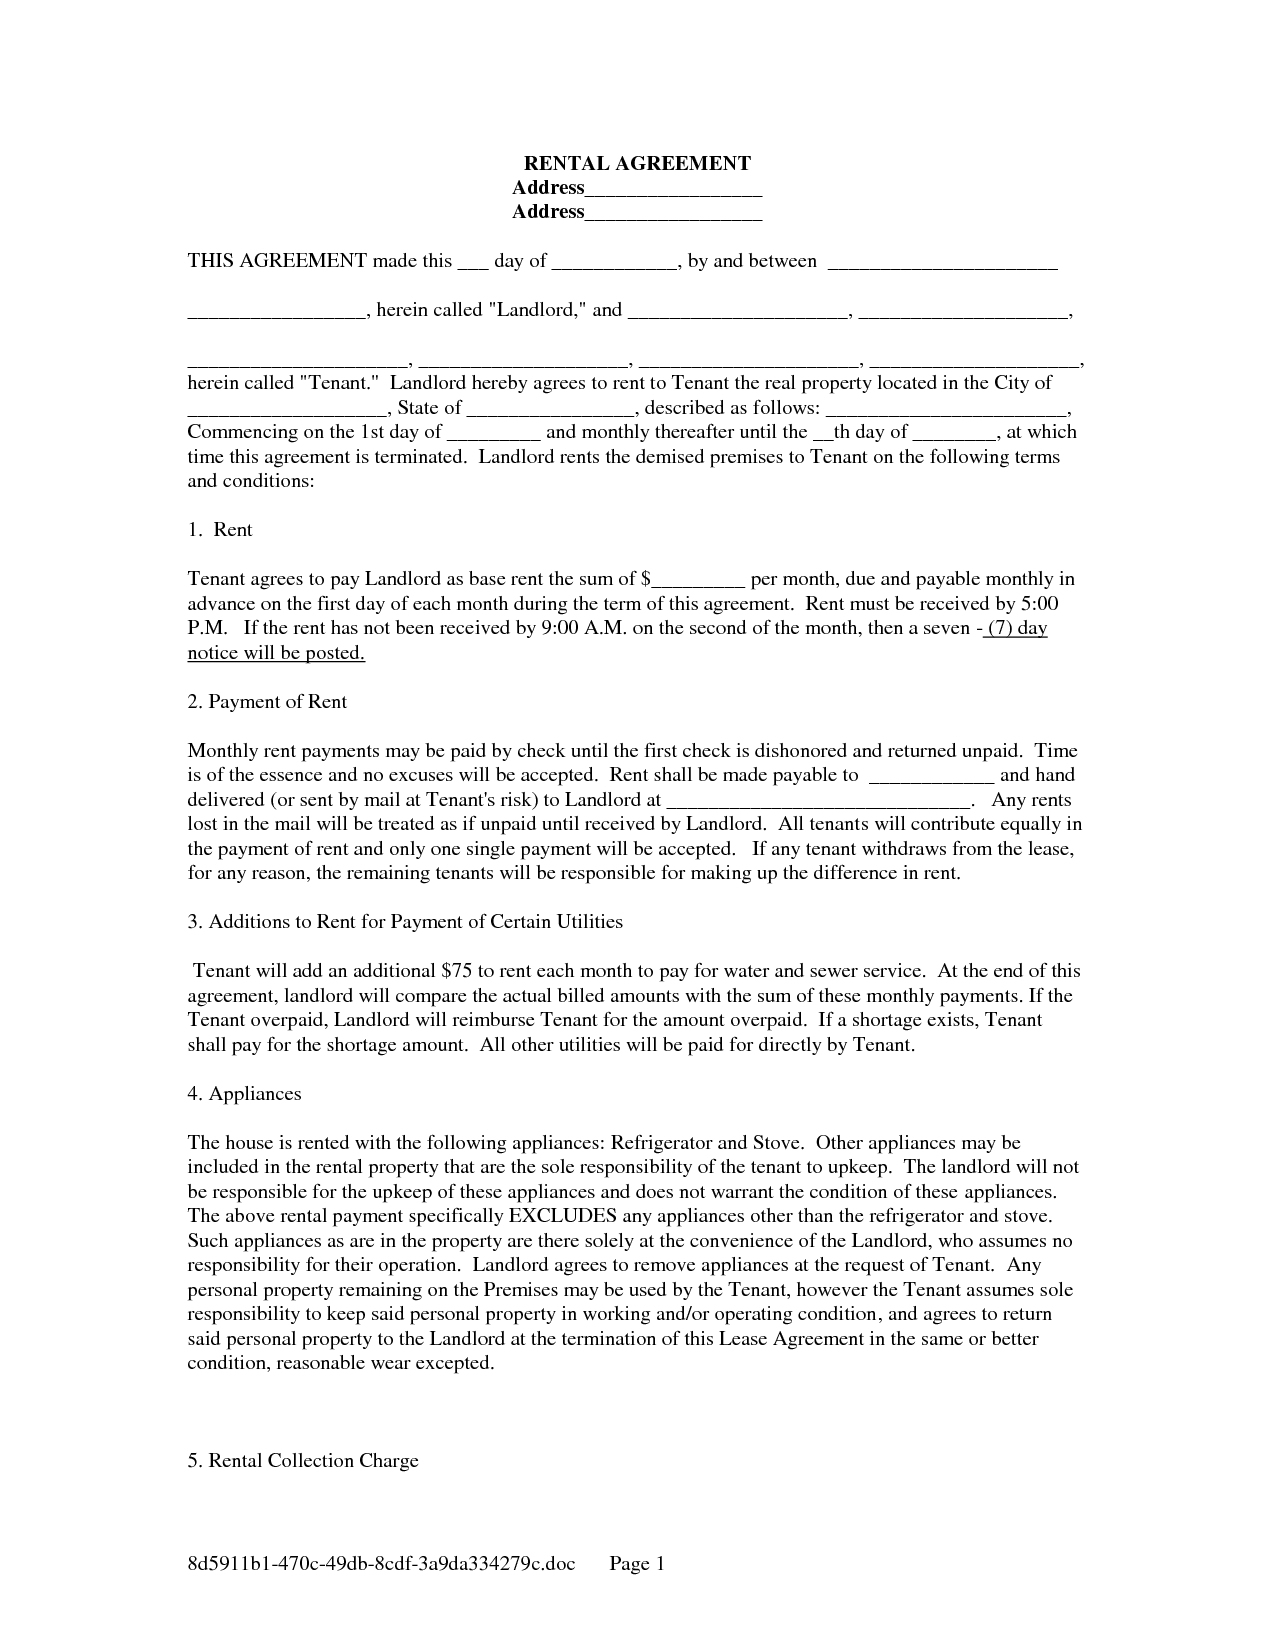 Printable Rental Lease Agreement Form For Free   Shop Fresh - Rental Agreement Forms Free Printable